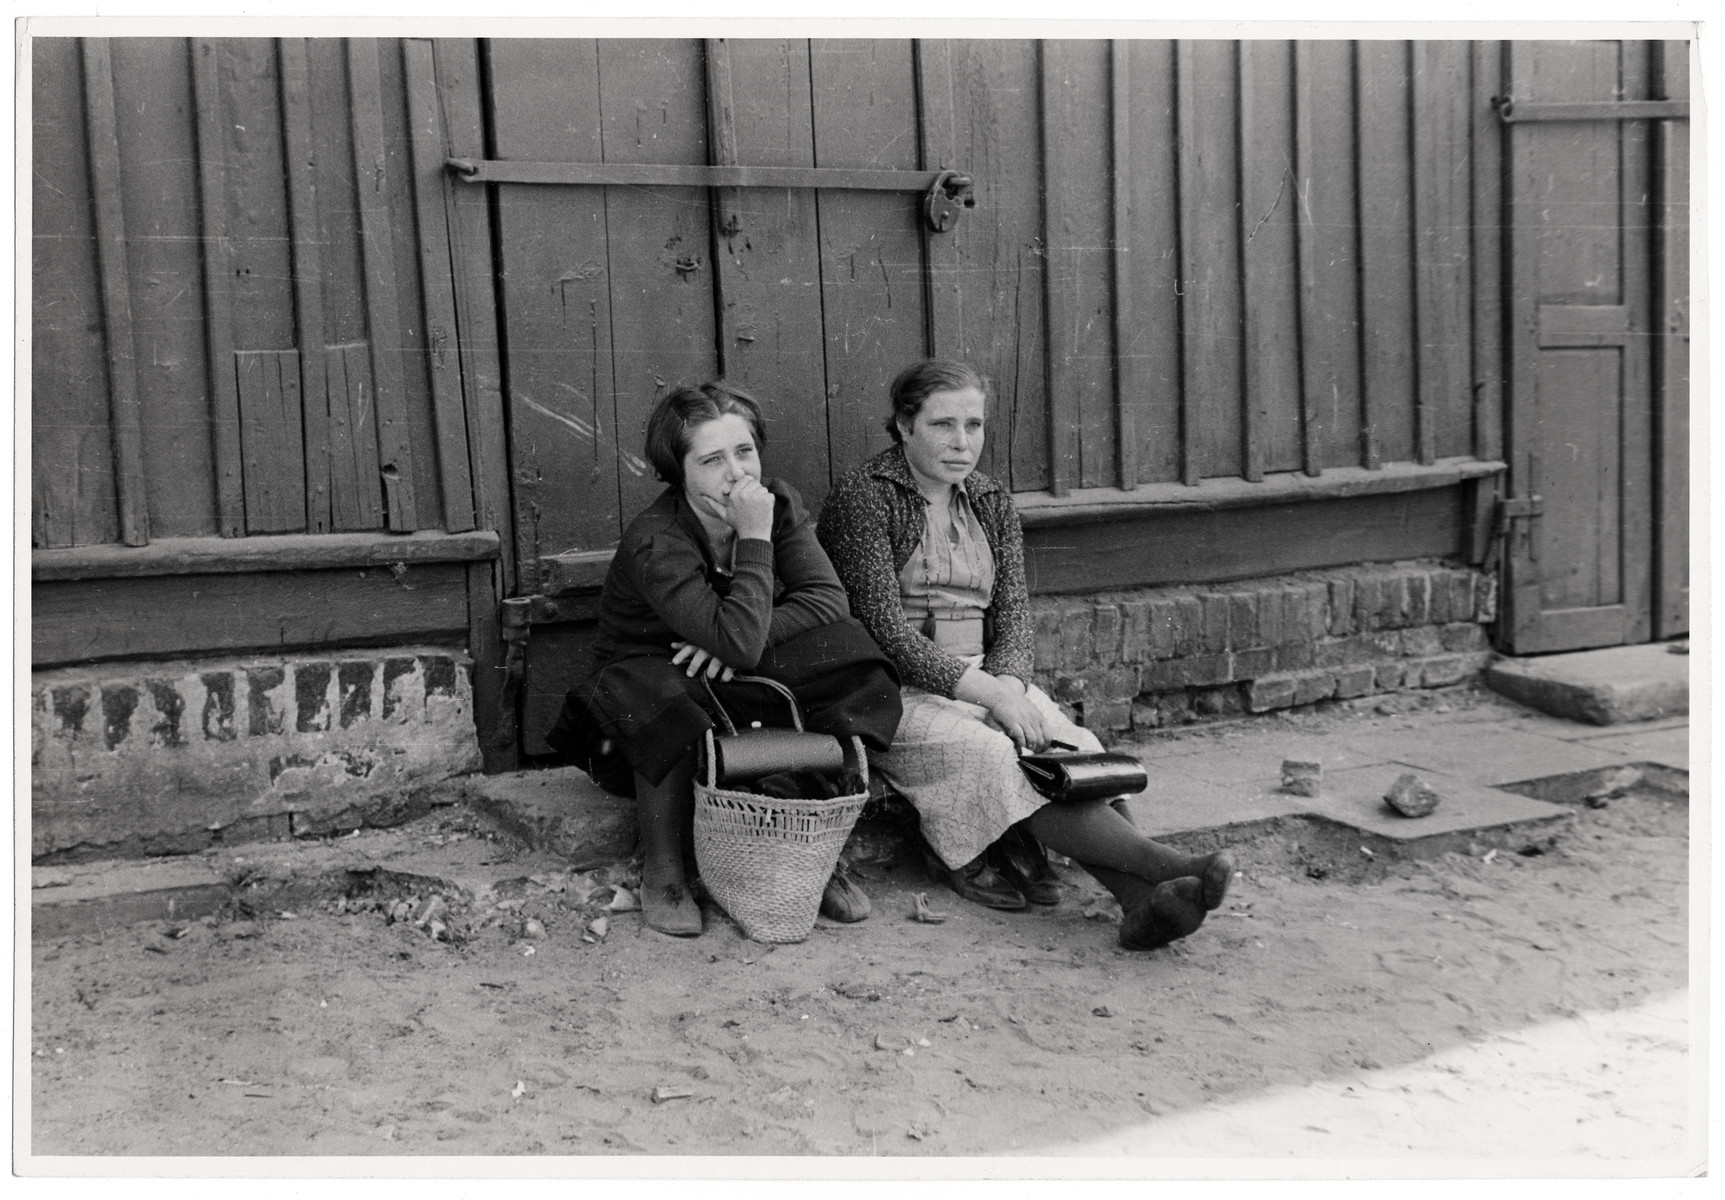 Two Polish women sit on a stone step in besieged Warsaw.